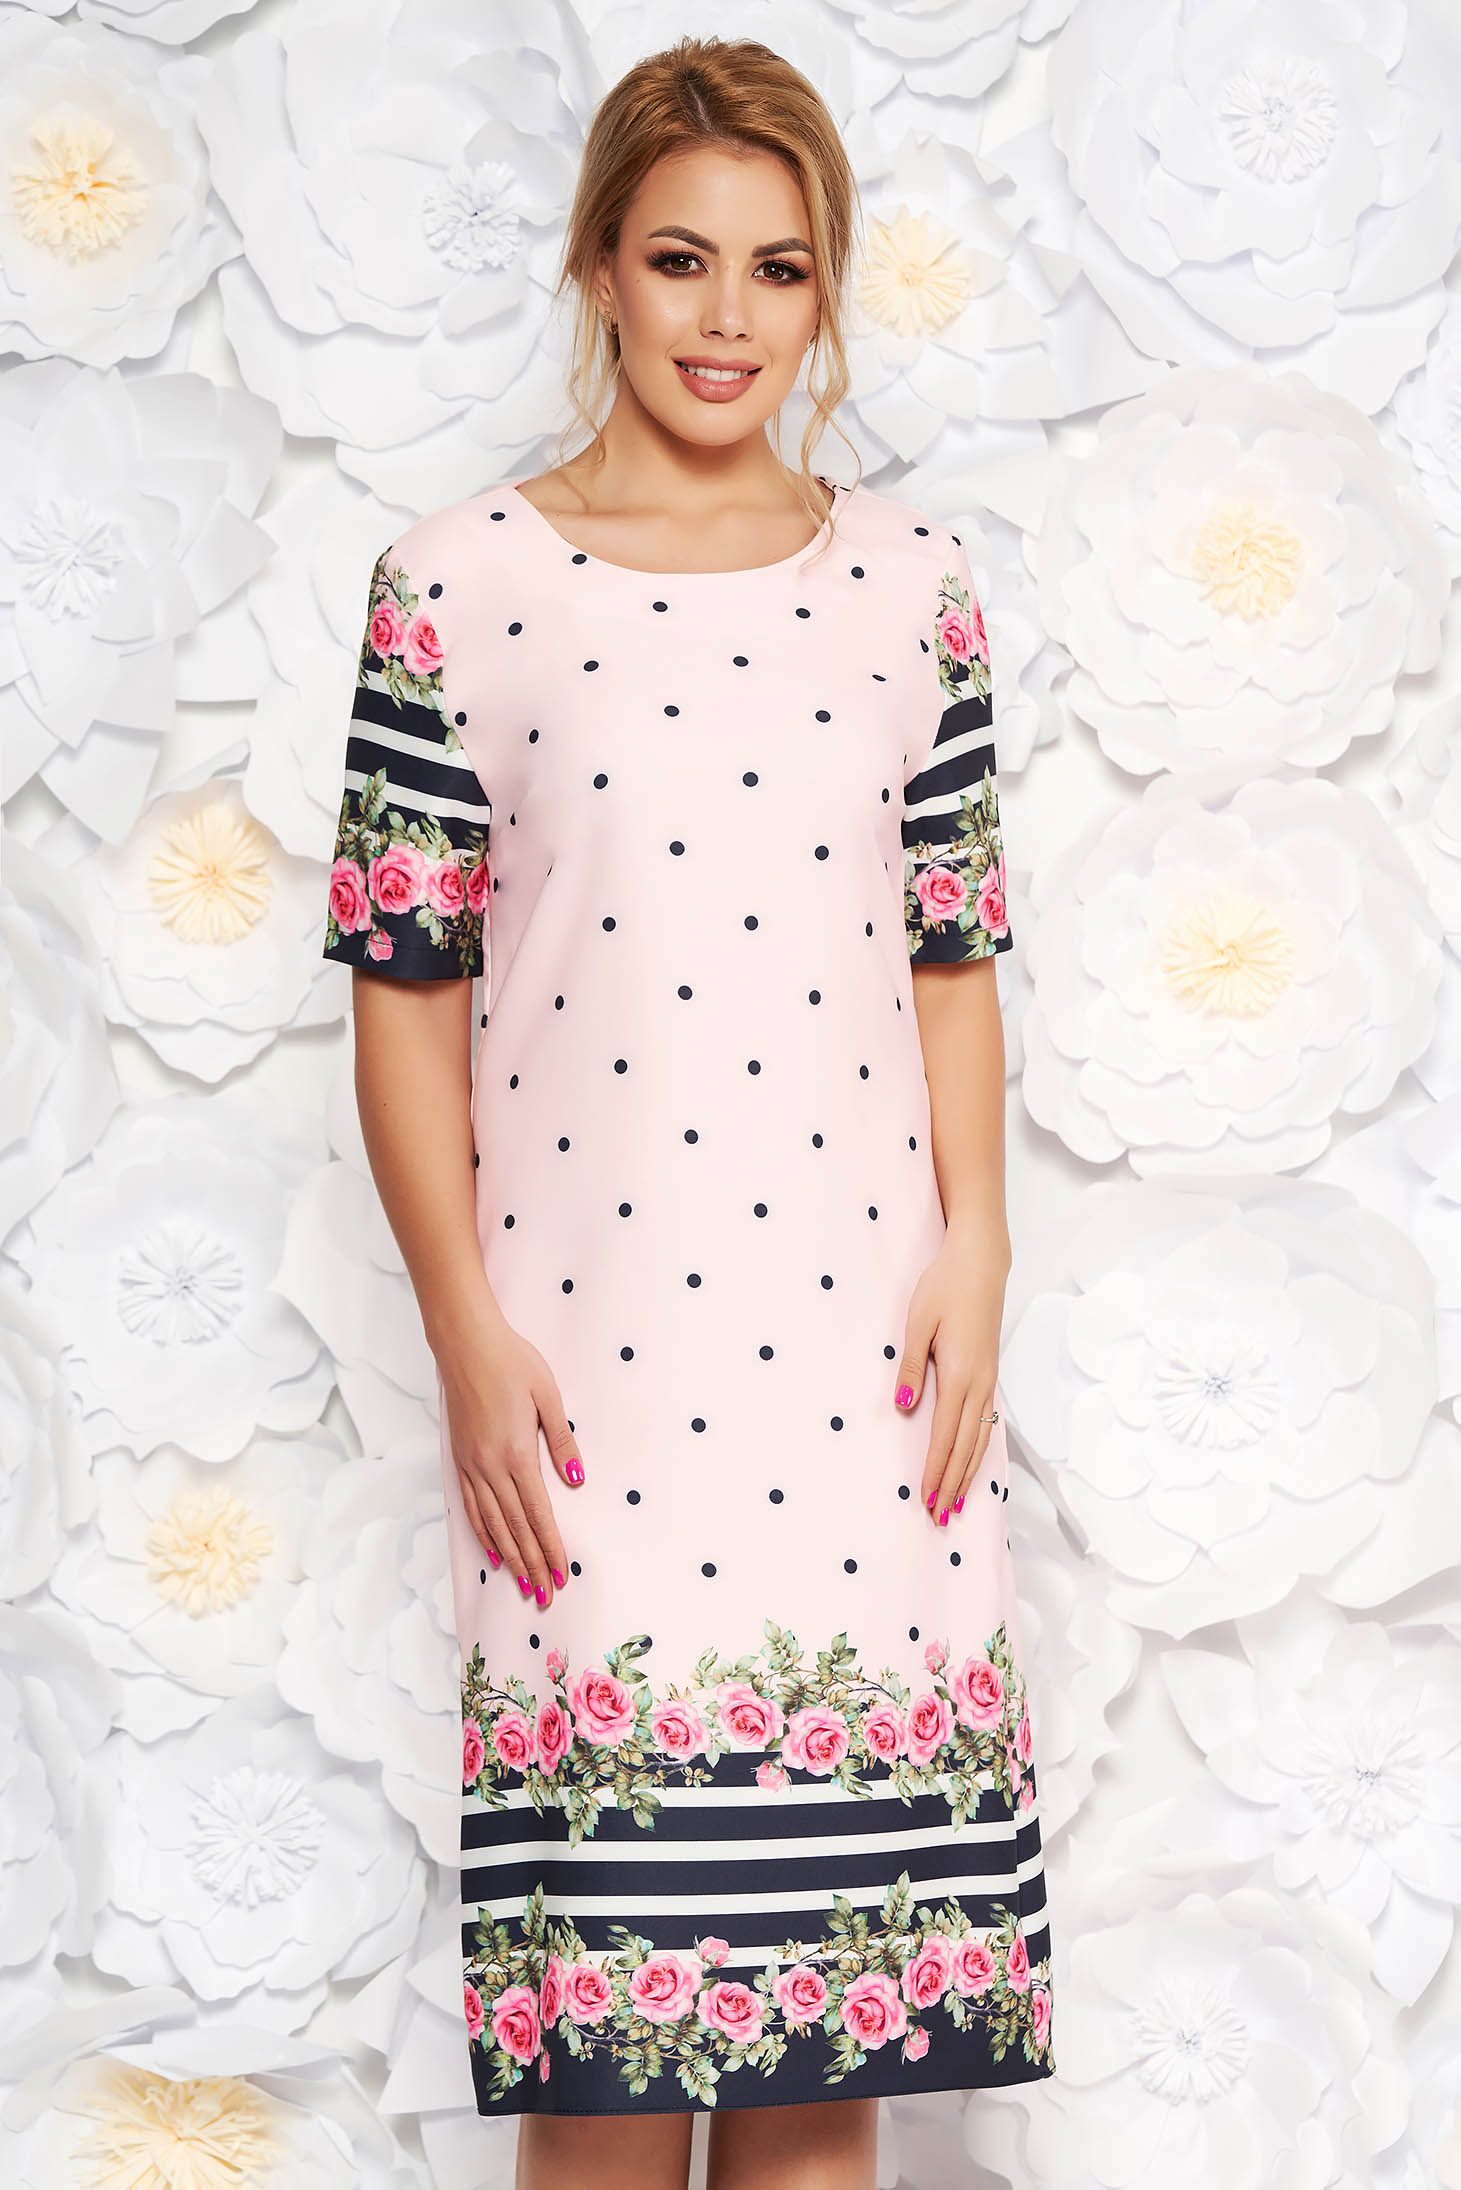 8ec13fa4ecc Rosa daily with straight cut dress slightly elastic fabric with floral  print dots print